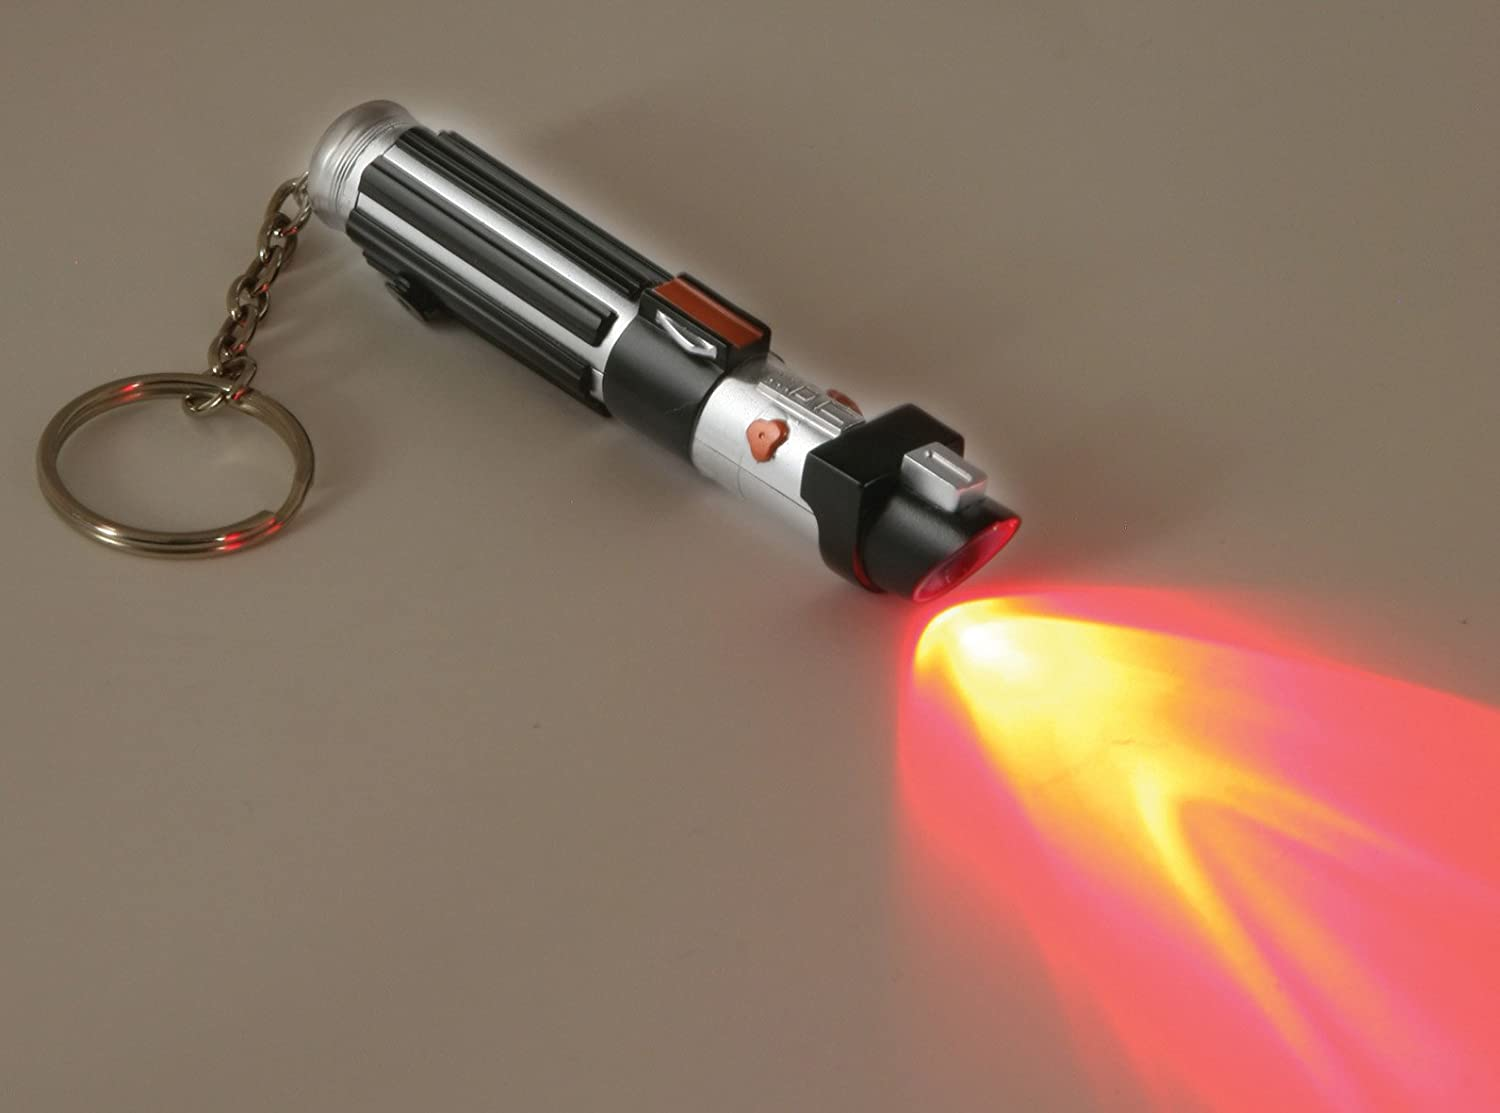 Amazon.com: Star Wars Darth Vader Lightsaber Key Ring Torch: Clothing for How To Make A Lightsaber Out Of A Flashlight  568zmd